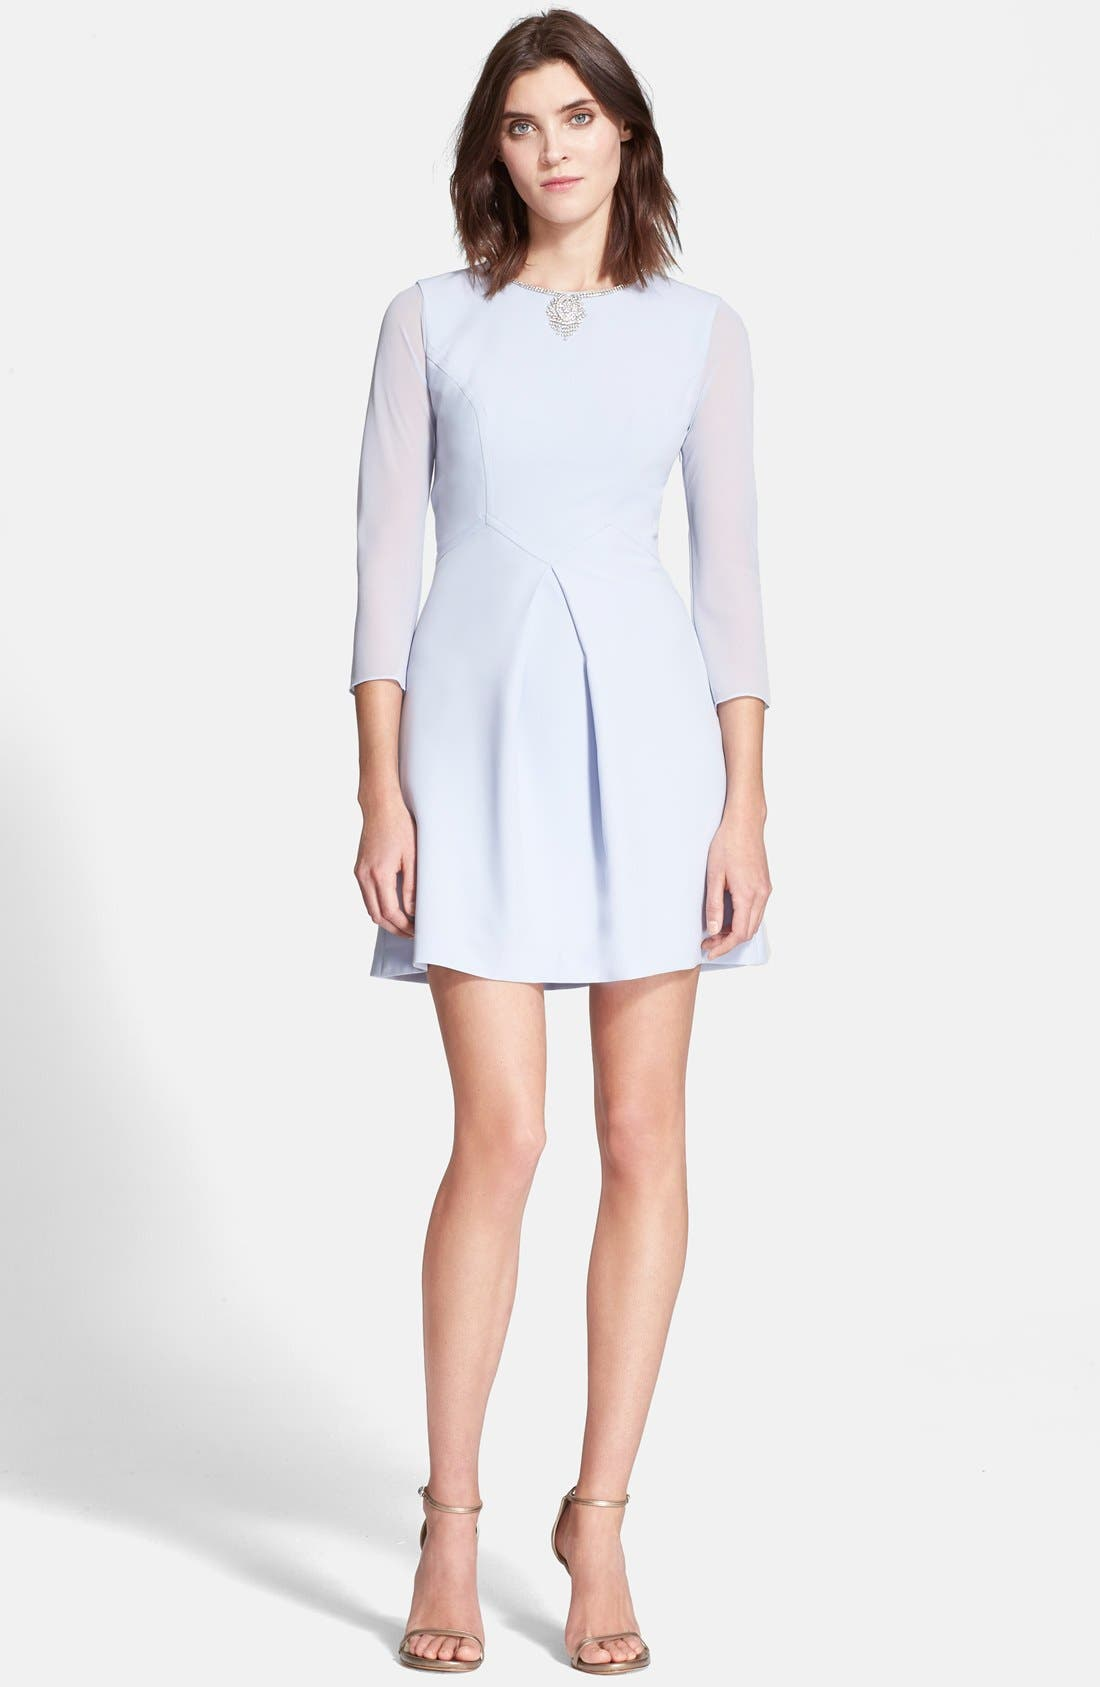 Alternate Image 1 Selected - Ted Baker London 'Haswell' Embellished Three Quarter Sleeve A-Line Dress